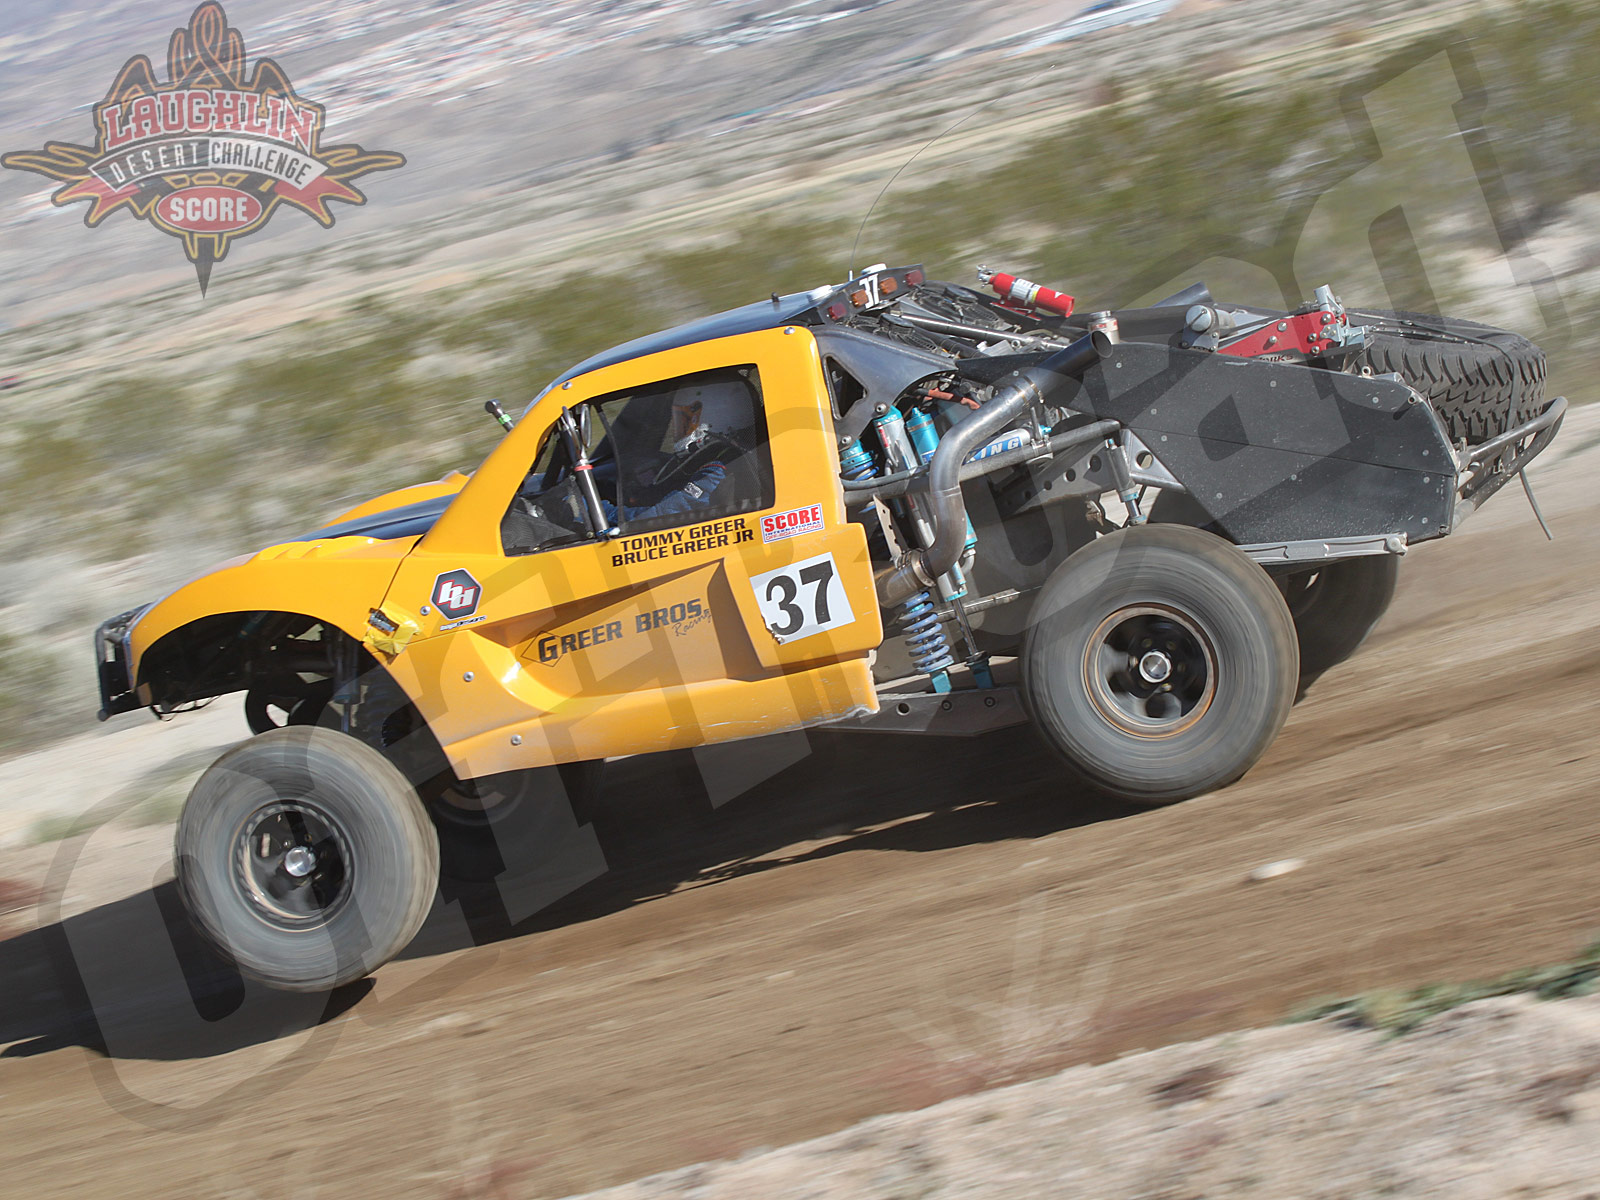 030311or 6905+2011 score laughlin desert challenge+trophy trucks sunday